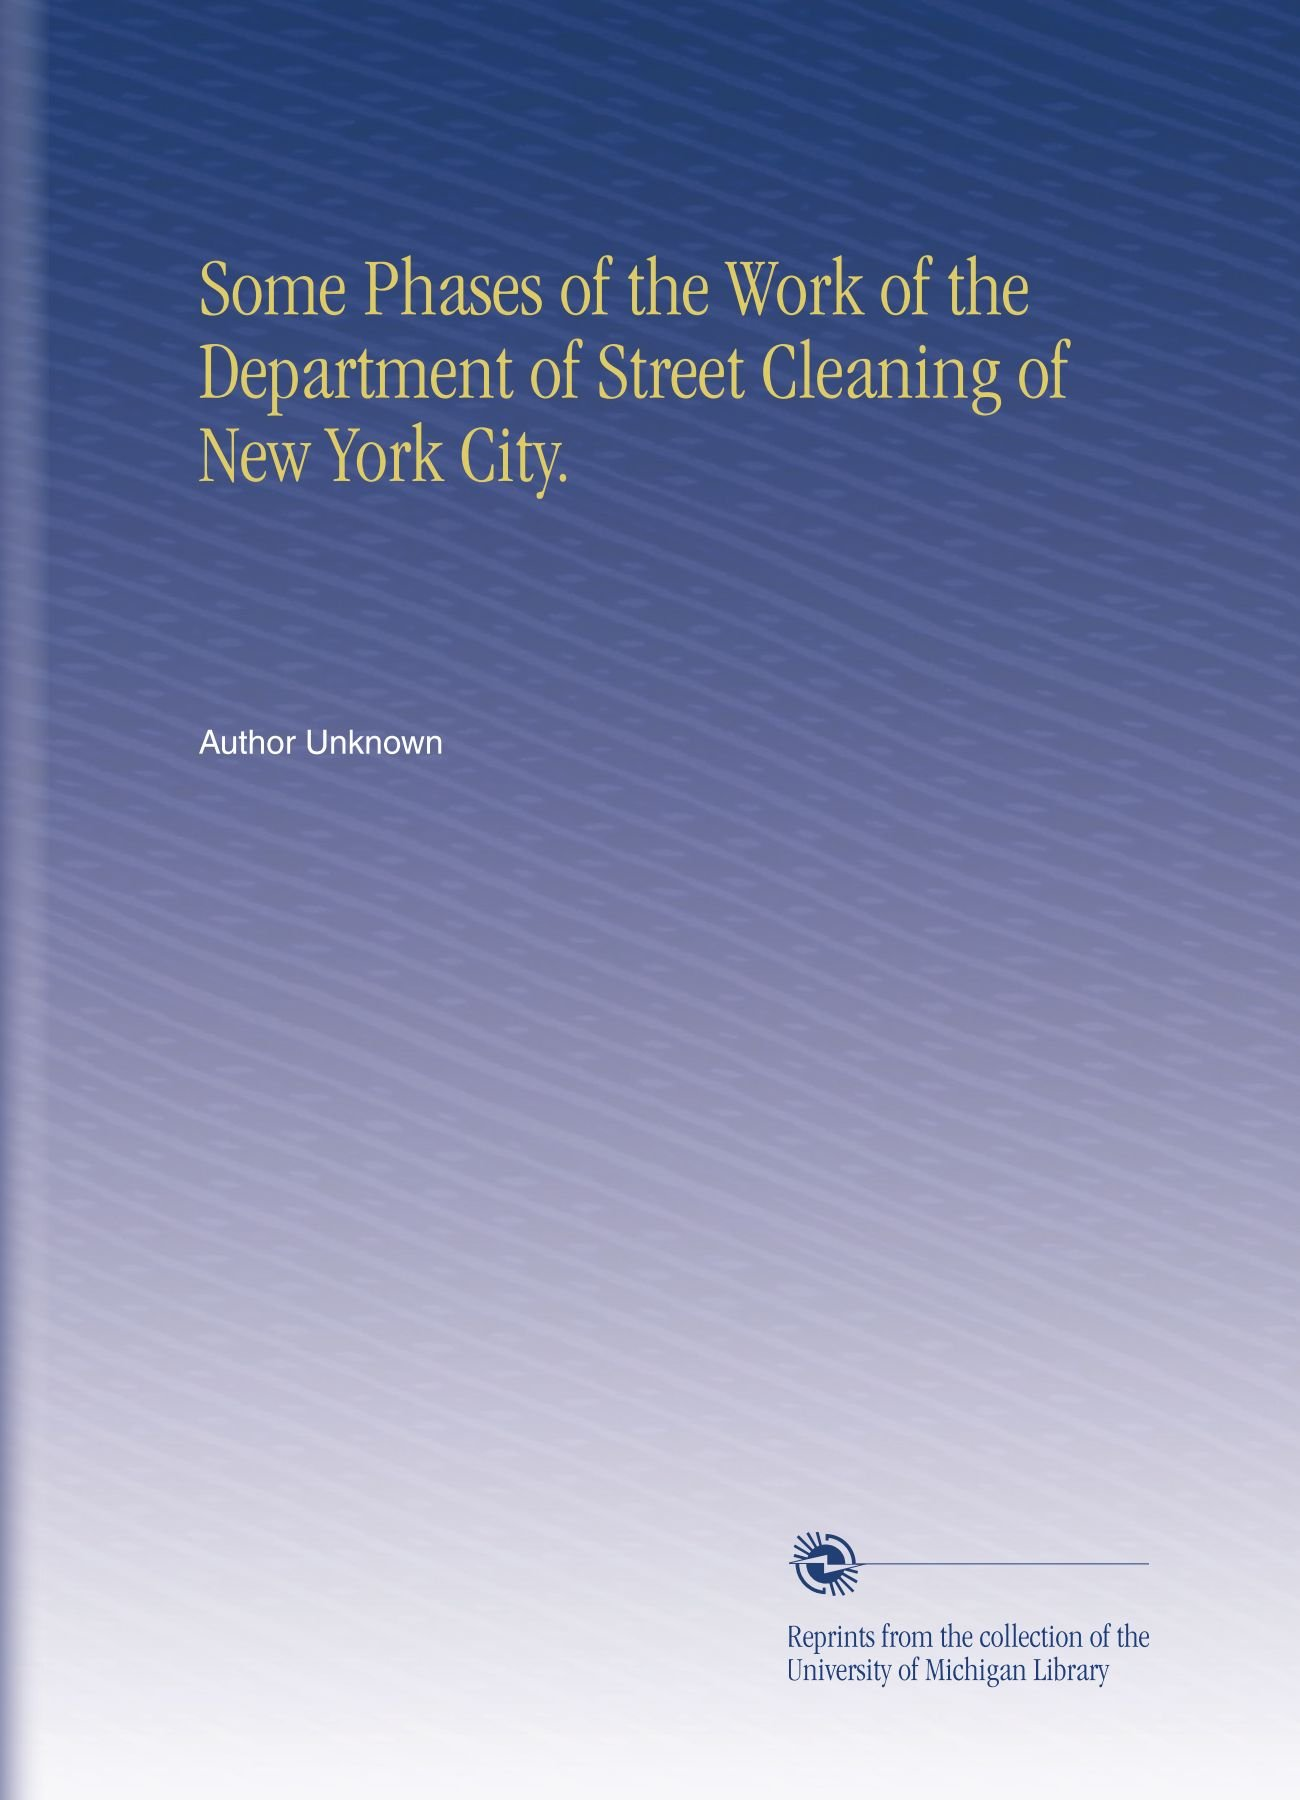 Some Phases of the Work of the Department of Street Cleaning of New York City. PDF